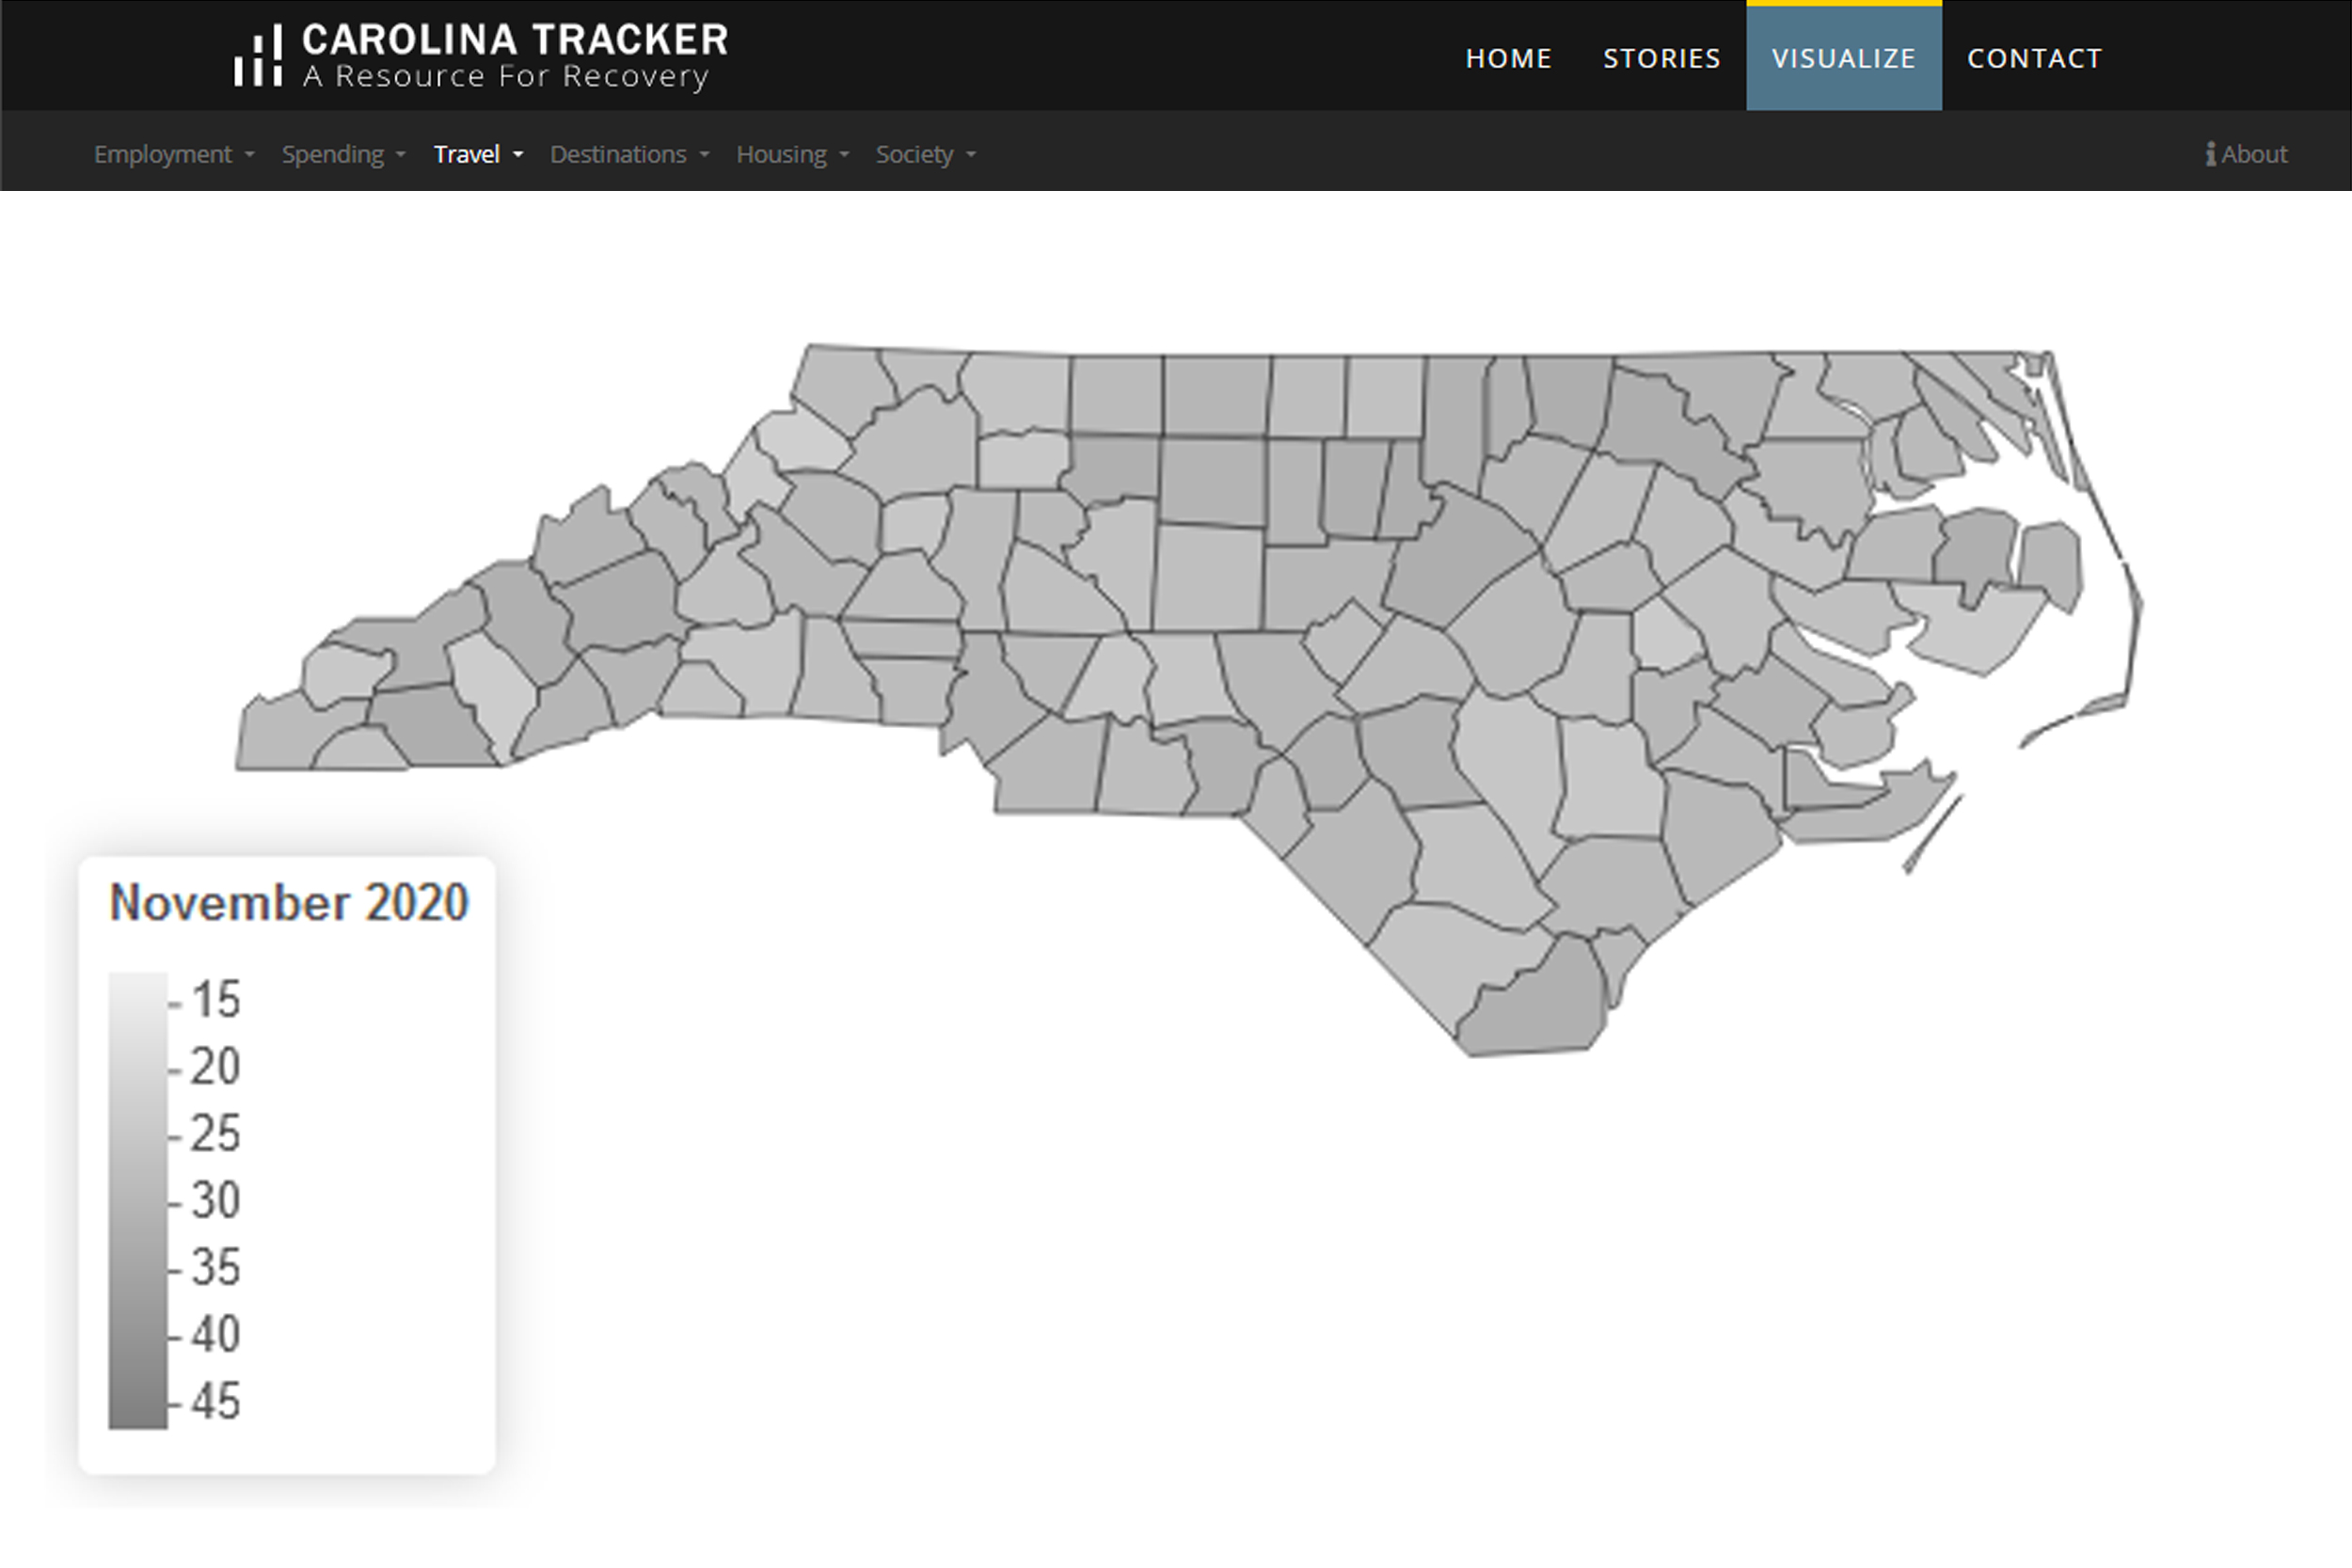 Carolina Tracker with a map of NC COVID-19 cases